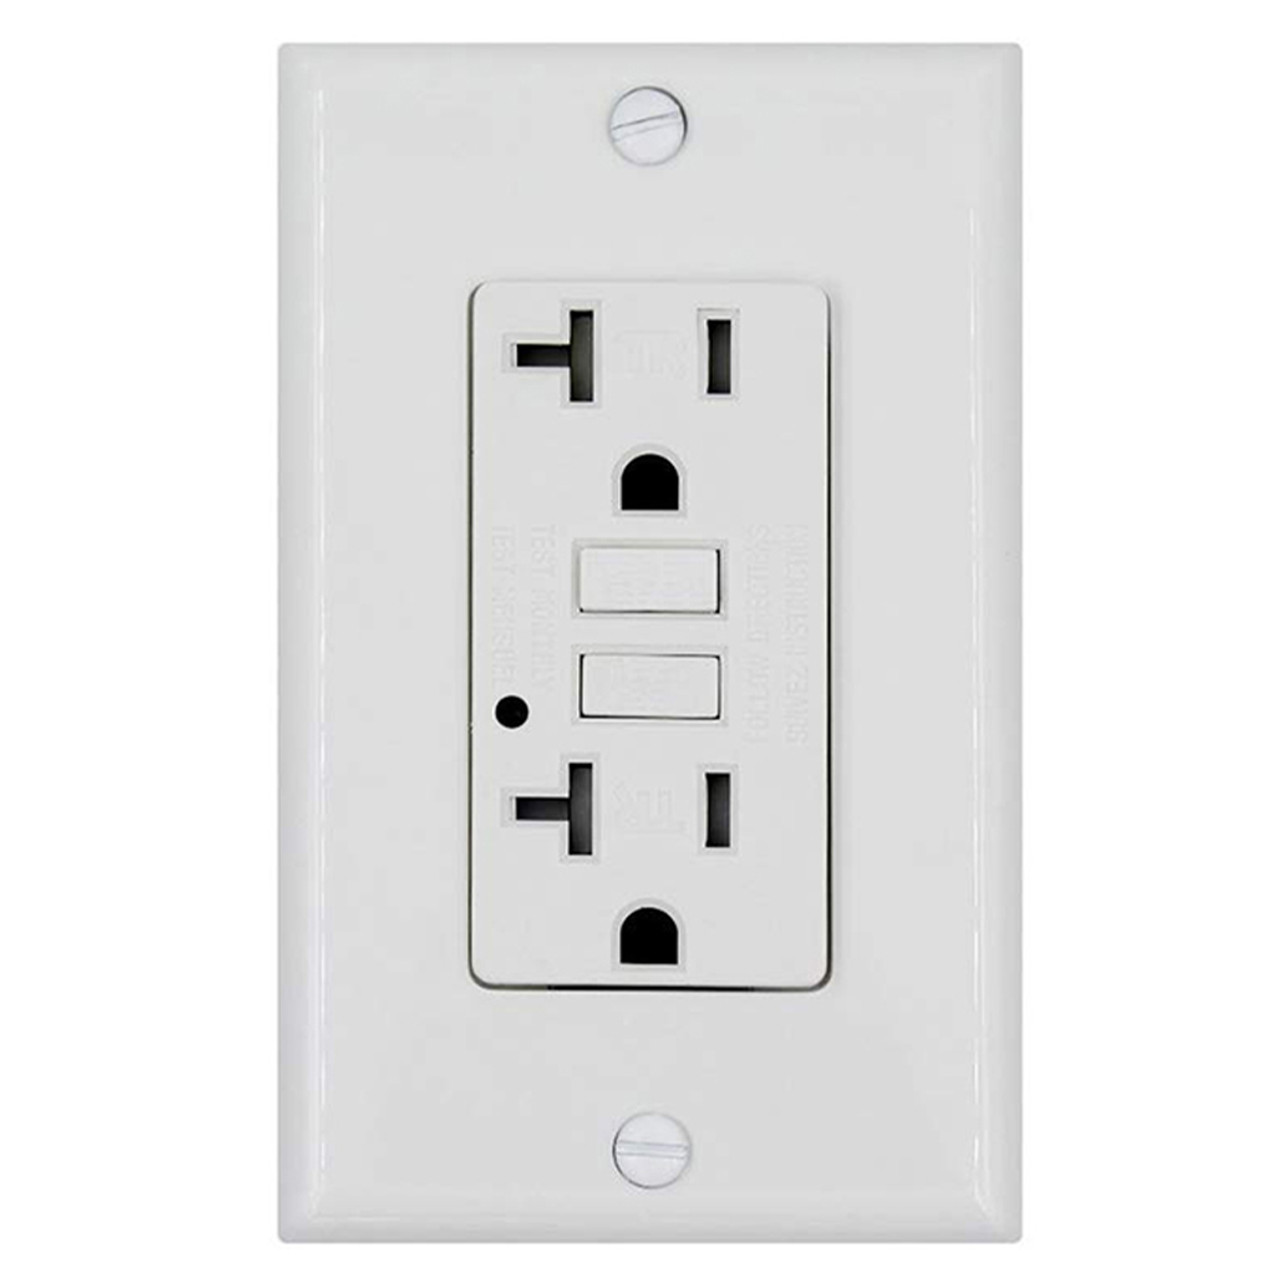 TEKLECTRIC Tamper Resistant 20A 125V Electrical Outlet Receptacle w// Wall Plate